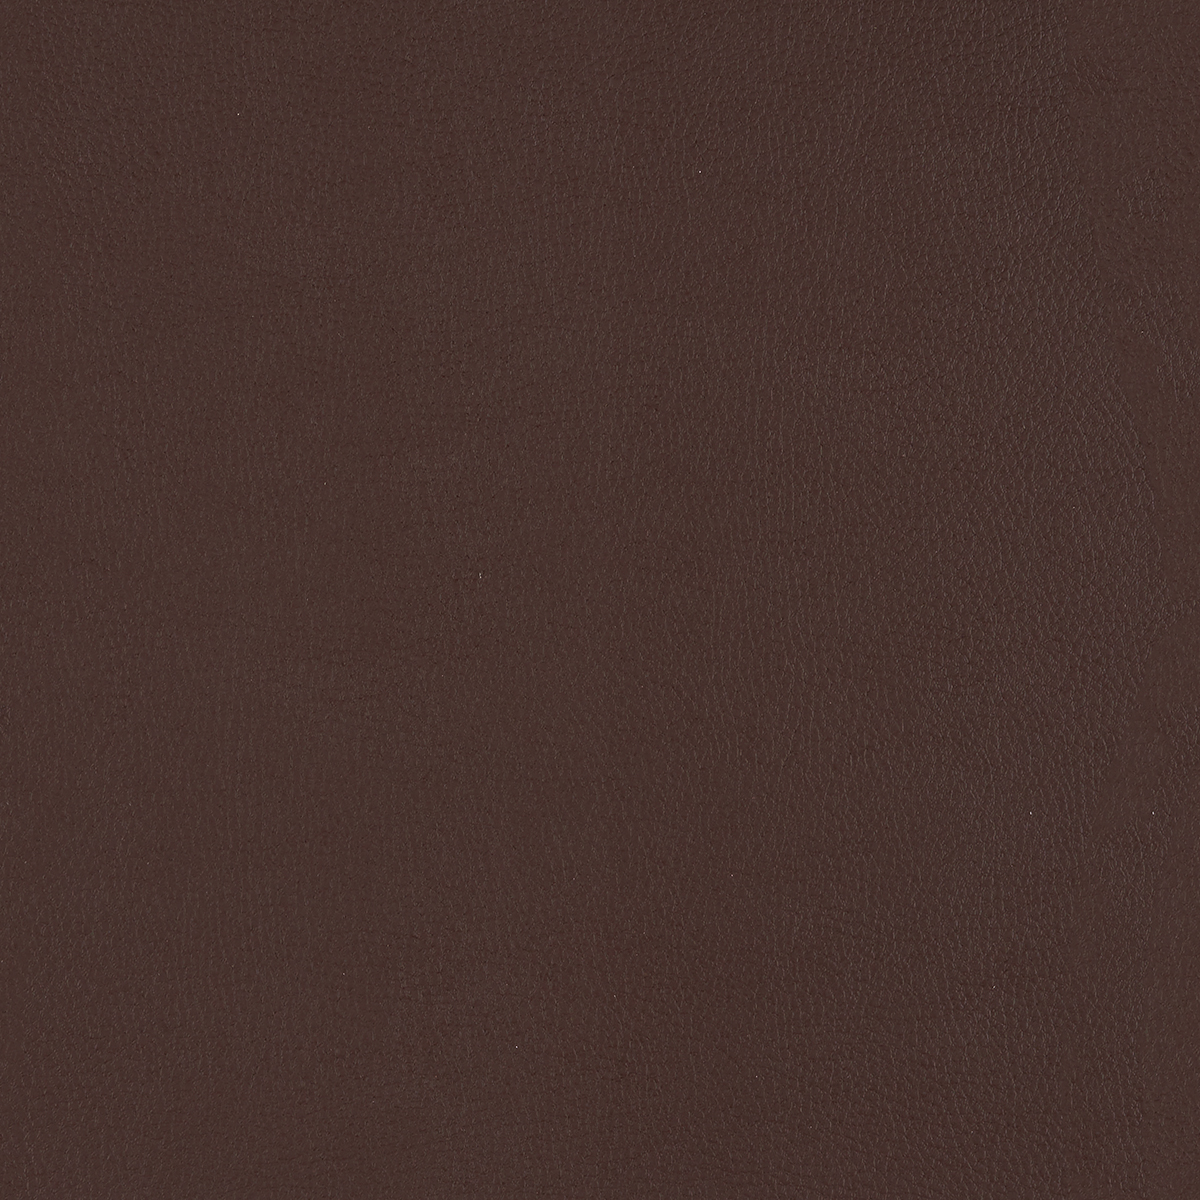 Top Coat - Aniline - 4083 - 05 Tileable Swatches